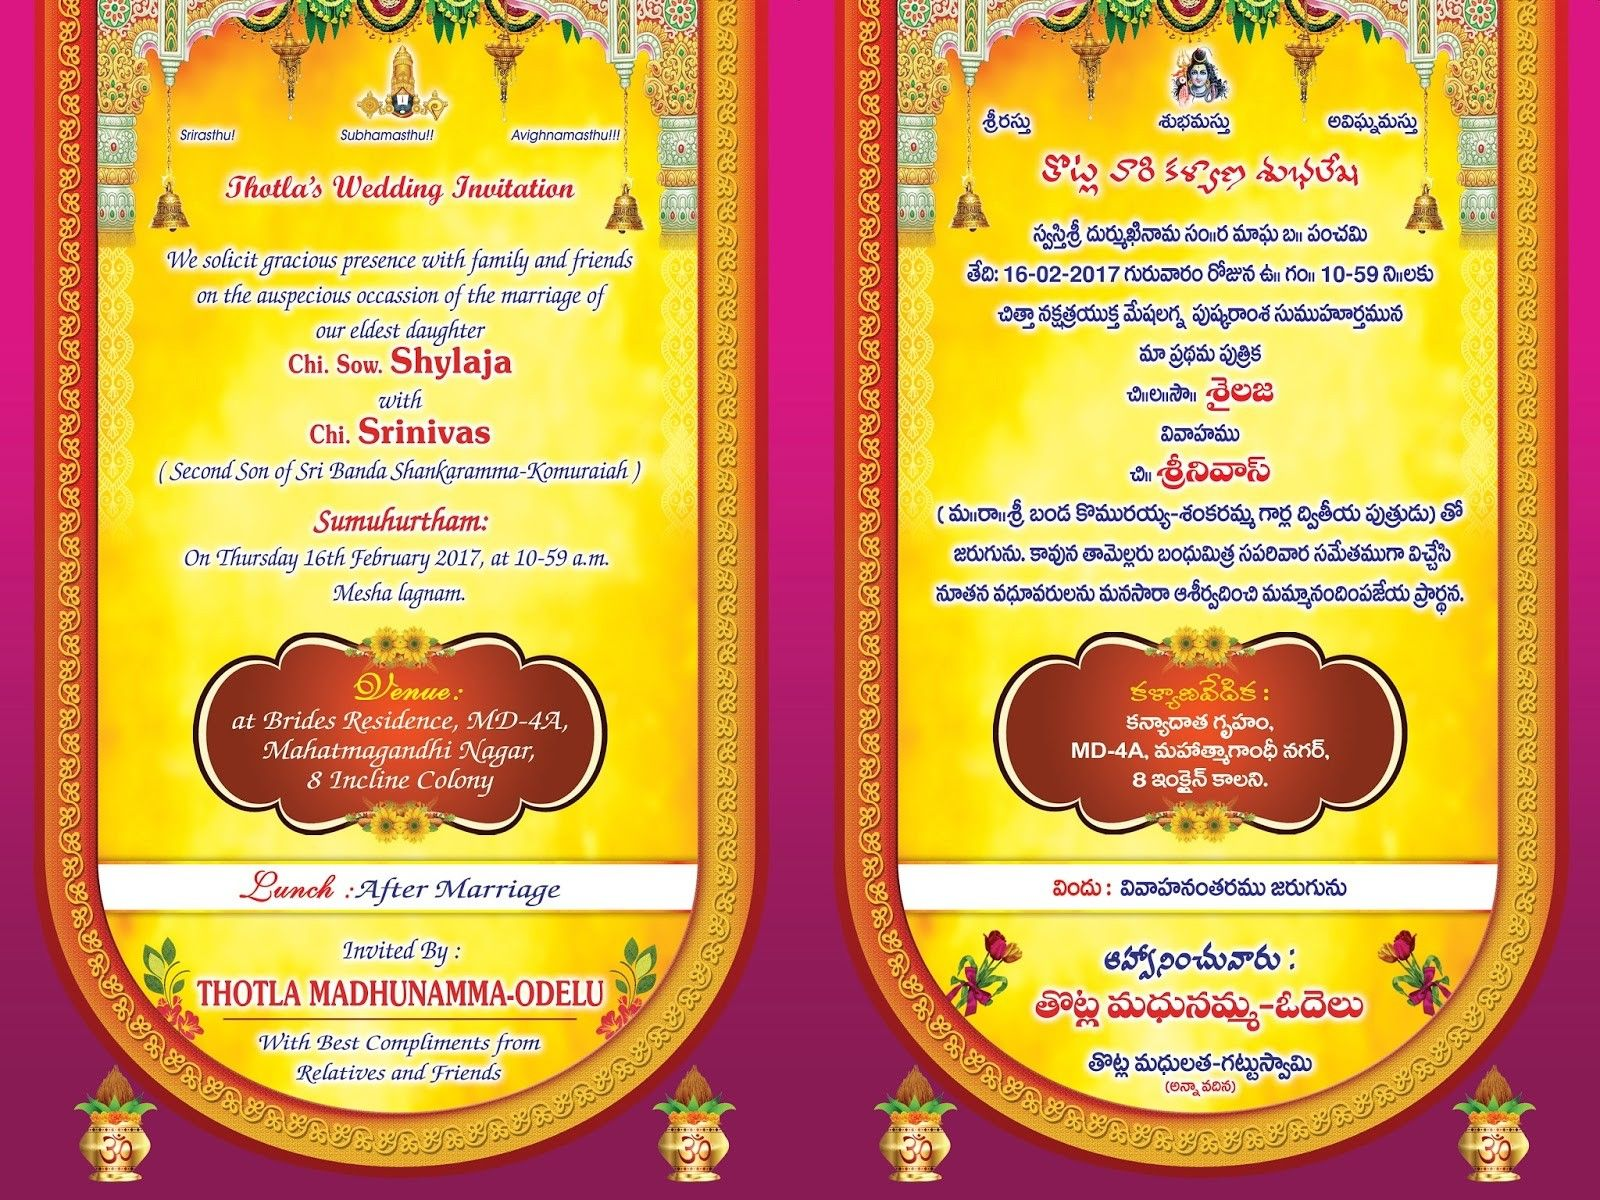 Invitation Templates Psd Free Download Inspirationa Indian Wedding Invitation Wedding Invitation Cards Engagement Invitation Template Hindu Wedding Invitations